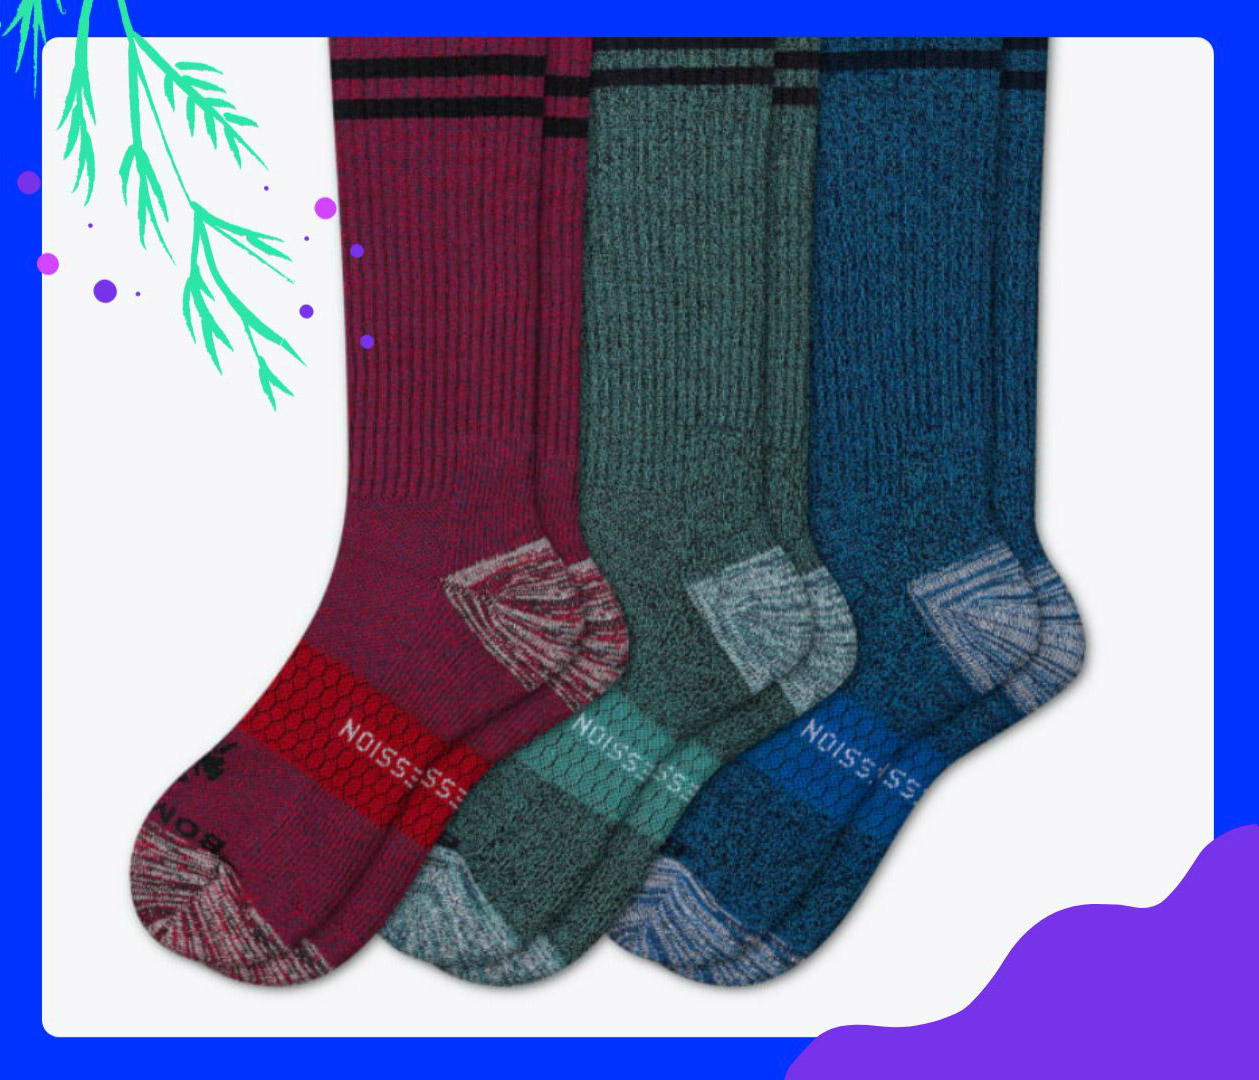 2020 Gifts for Healthcare Workers Compression Socks